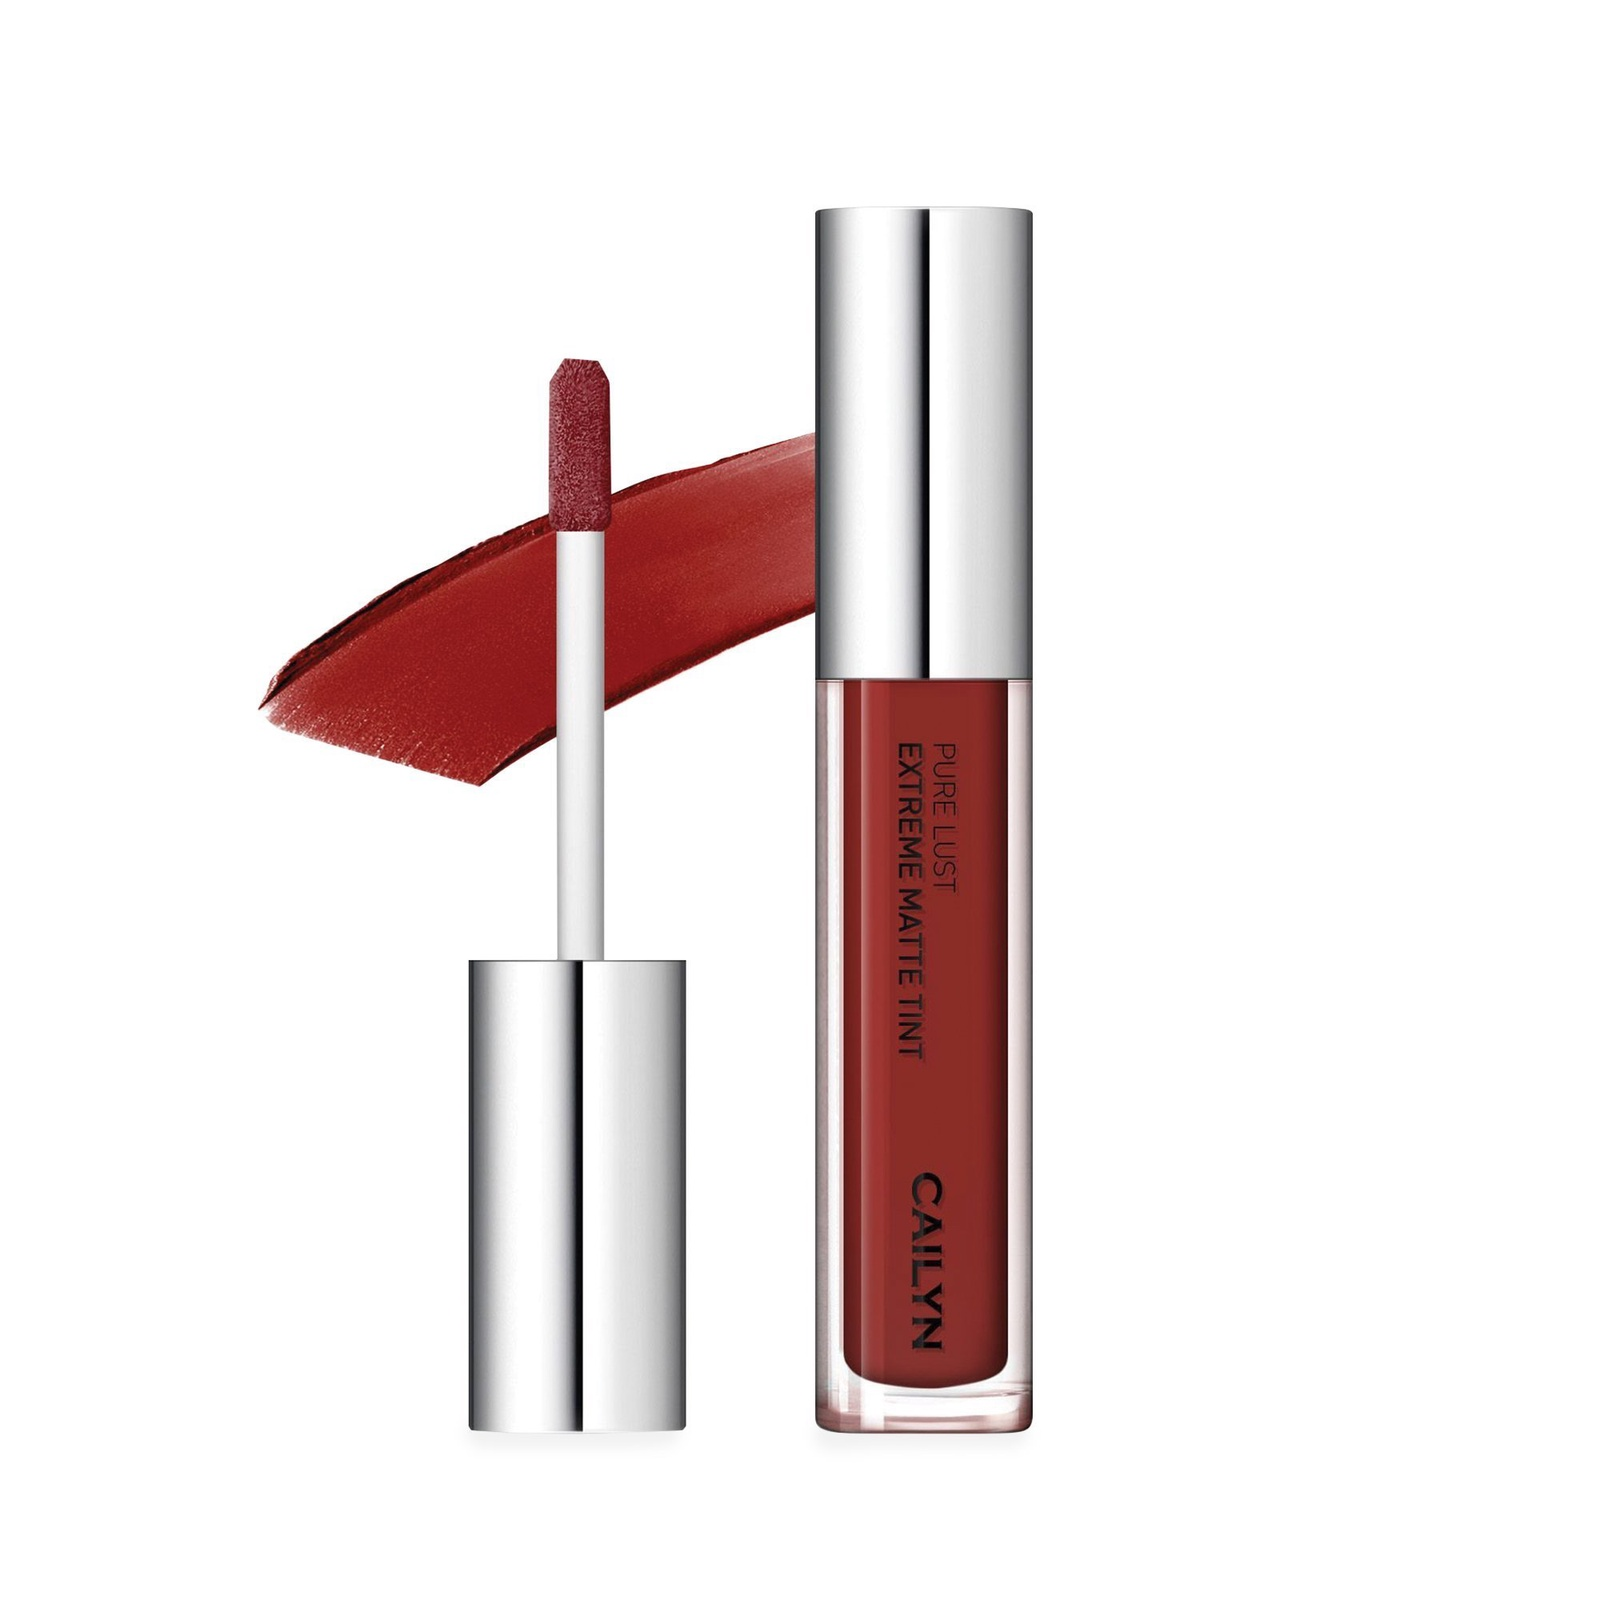 Тинт CAILYN Pure Lust Extreme Matte Tint матовый, 12 Classicist, 3.5 мл